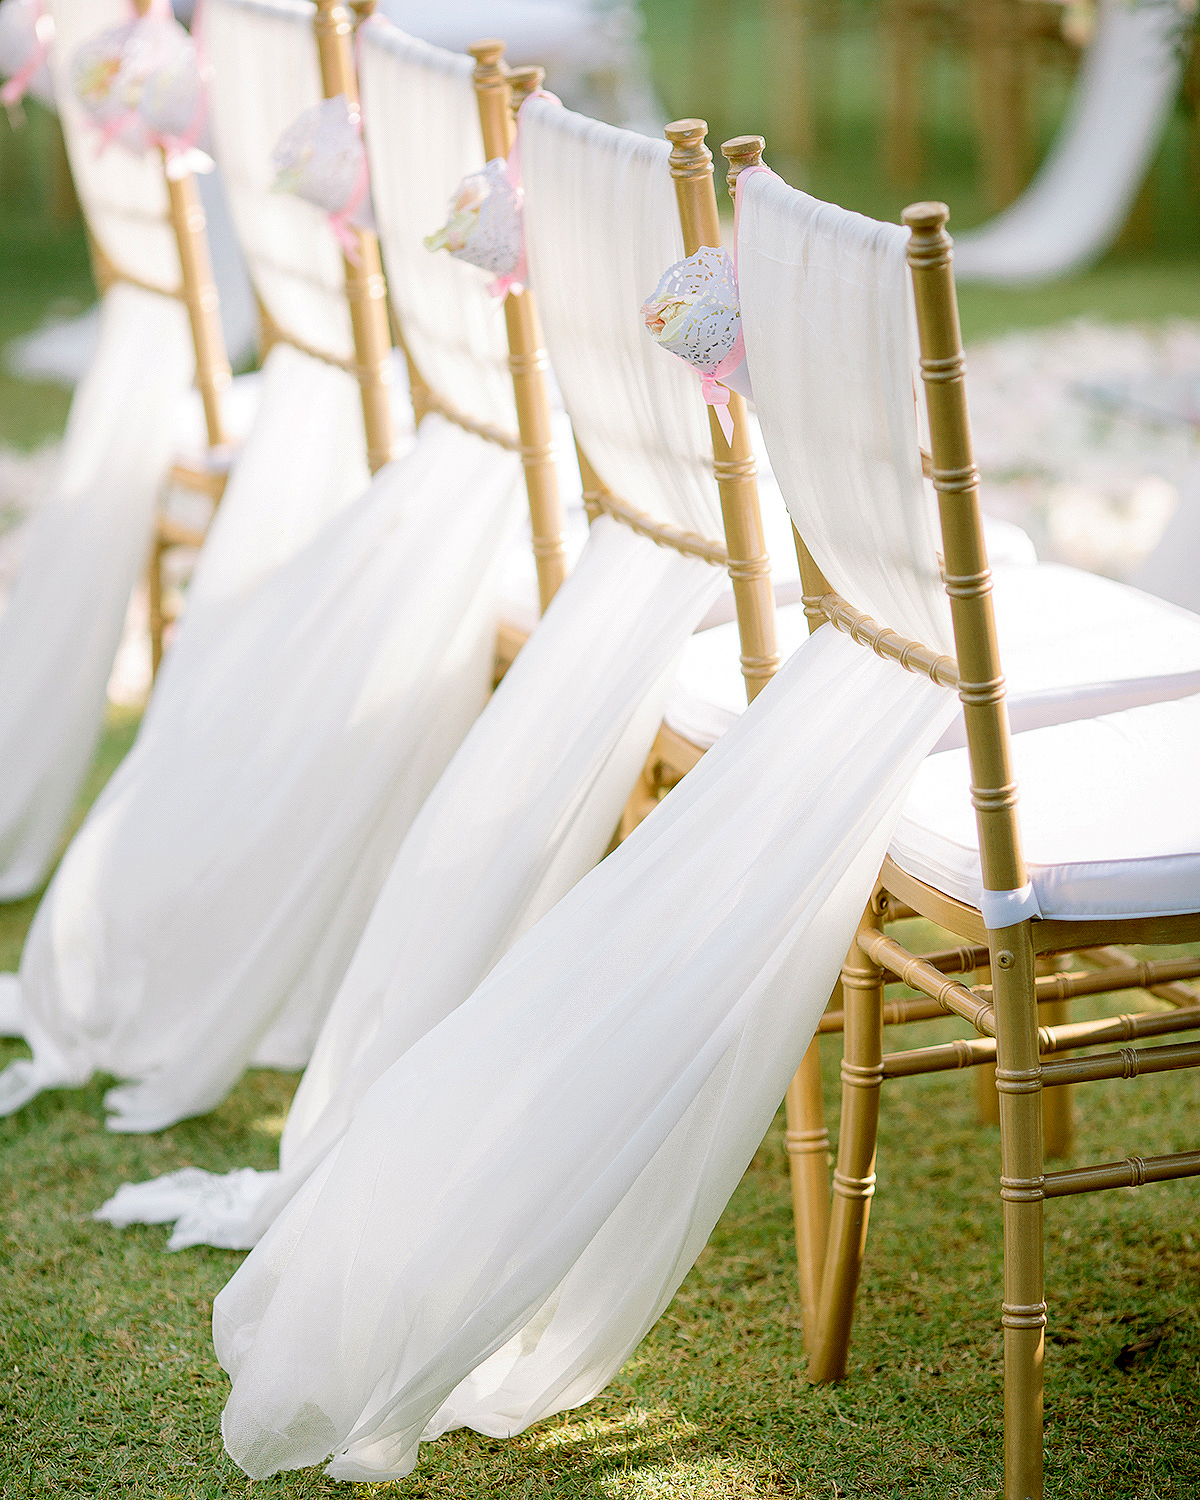 ladderback chairs woven with breezy tulle